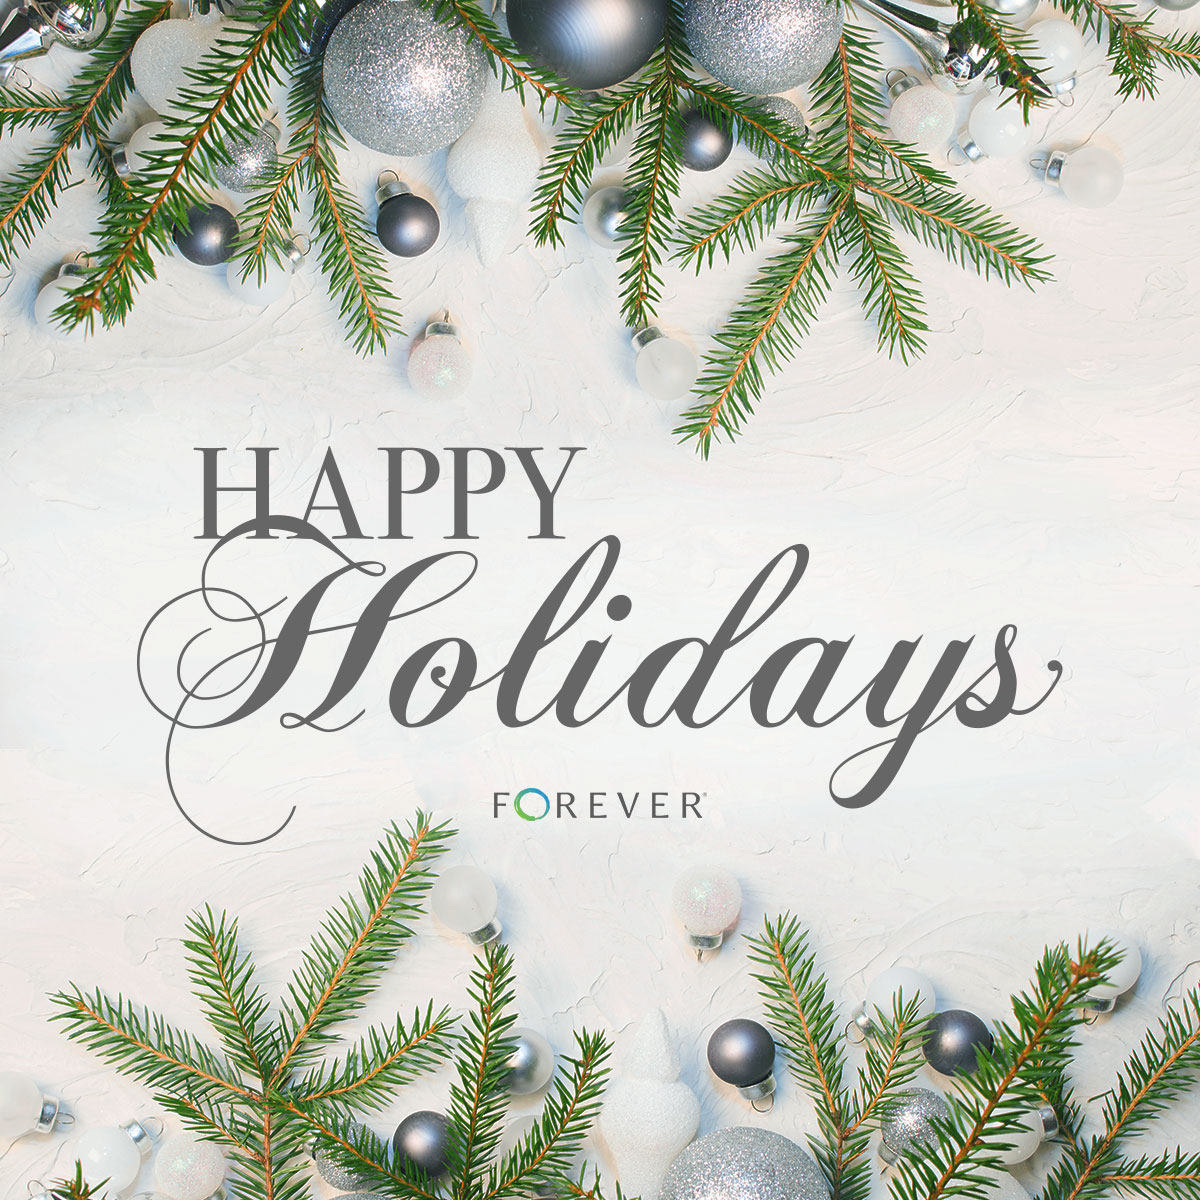 No matter what you celebrate, celebrate well! Happy Holidays from FOREVER!